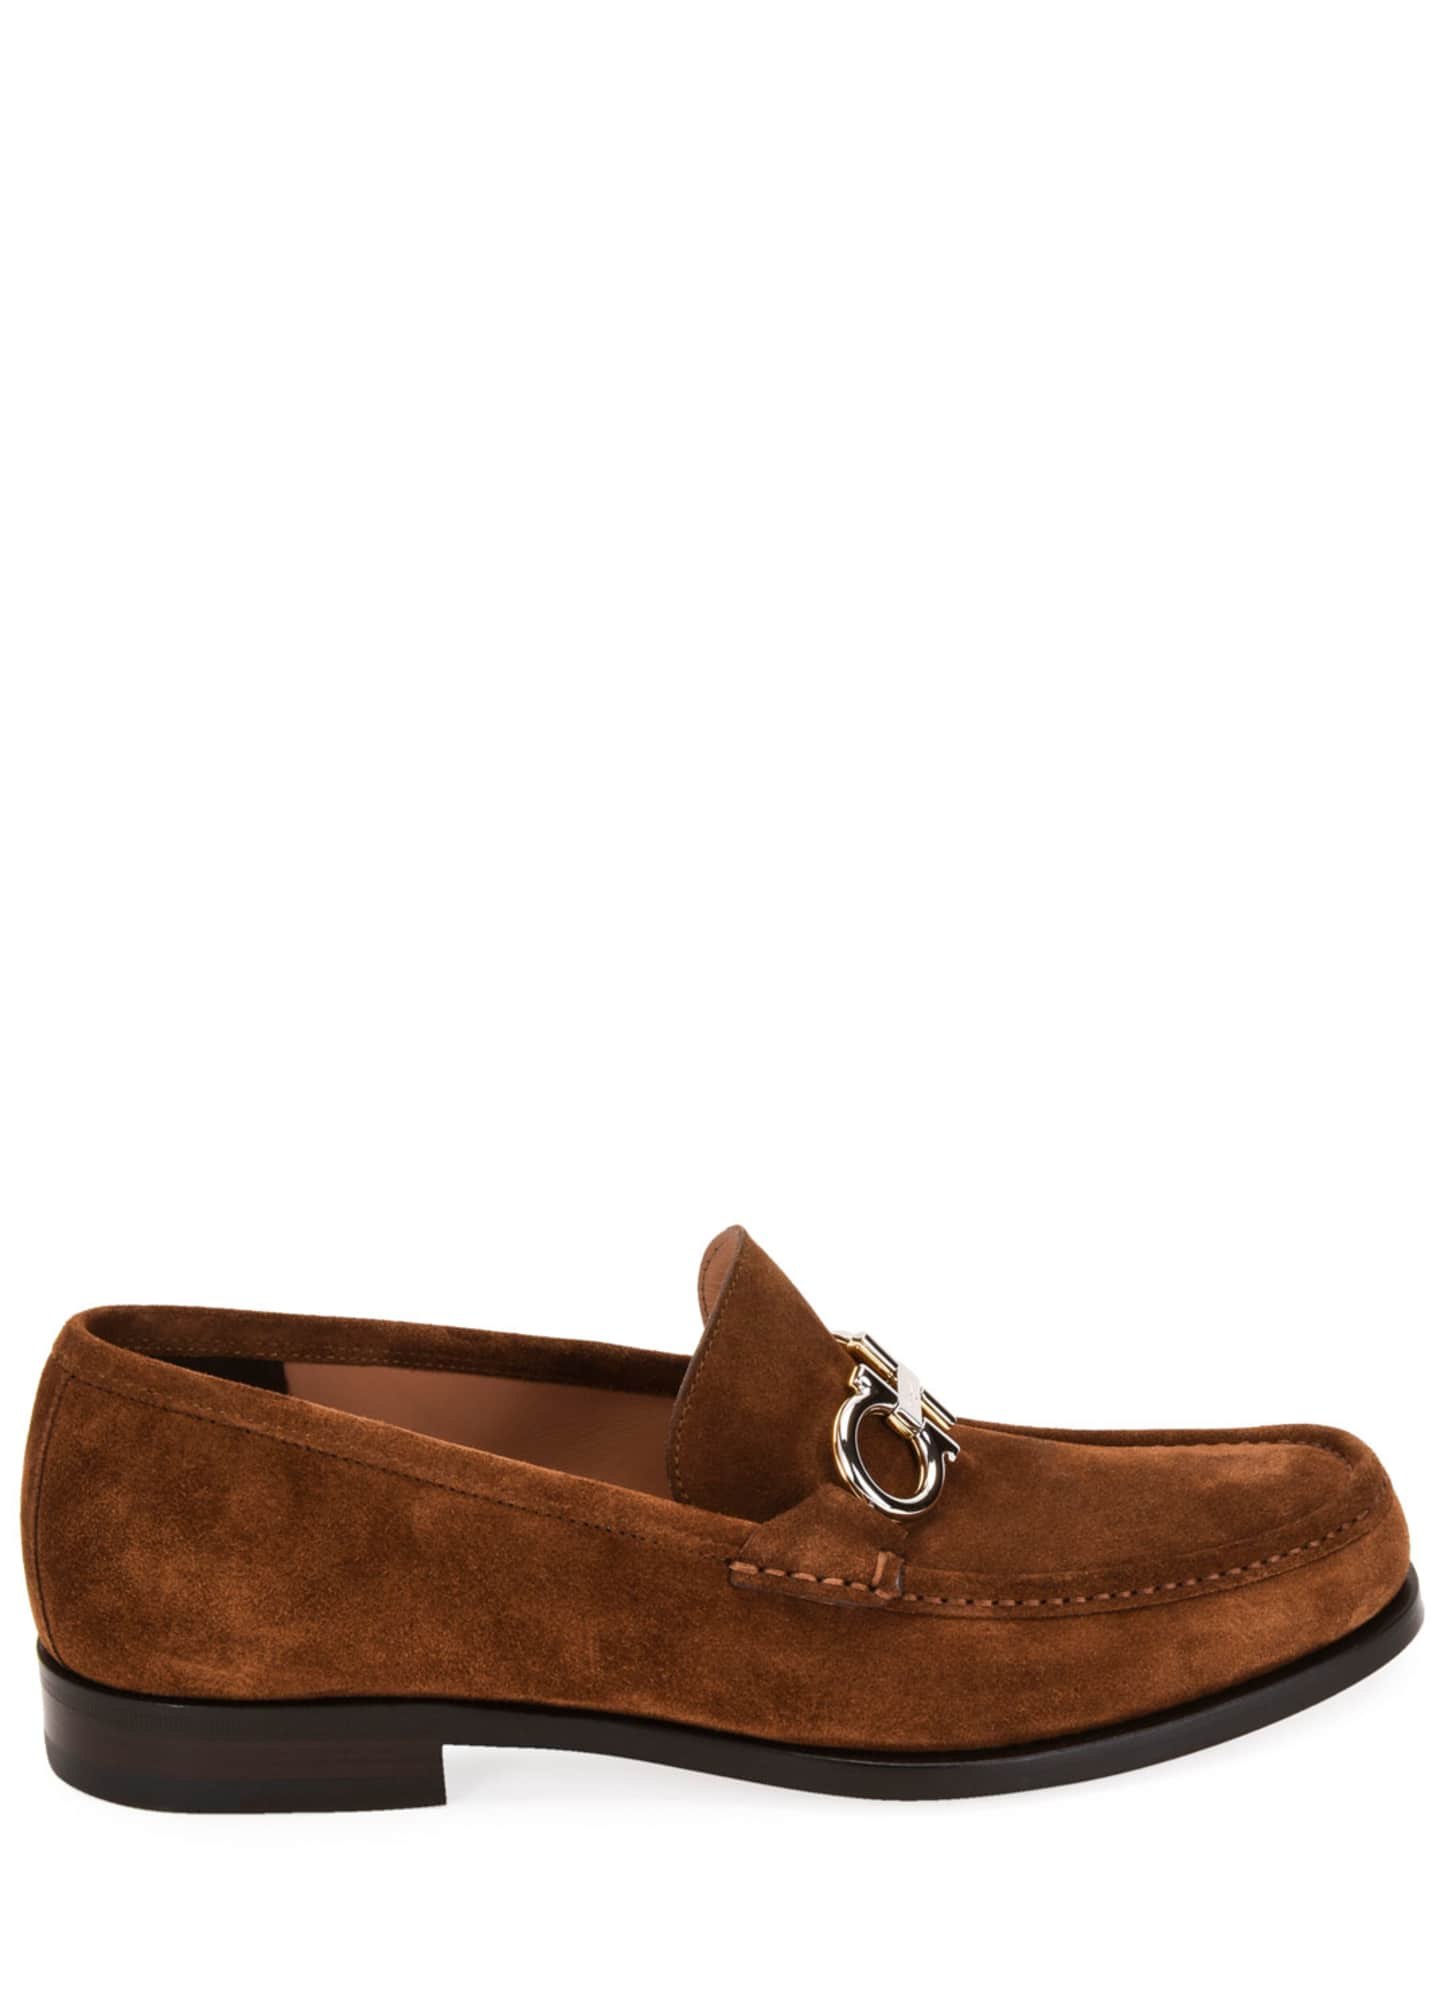 Image 3 of 4: Men's Rolo Suede Gancini-Bit Loafers